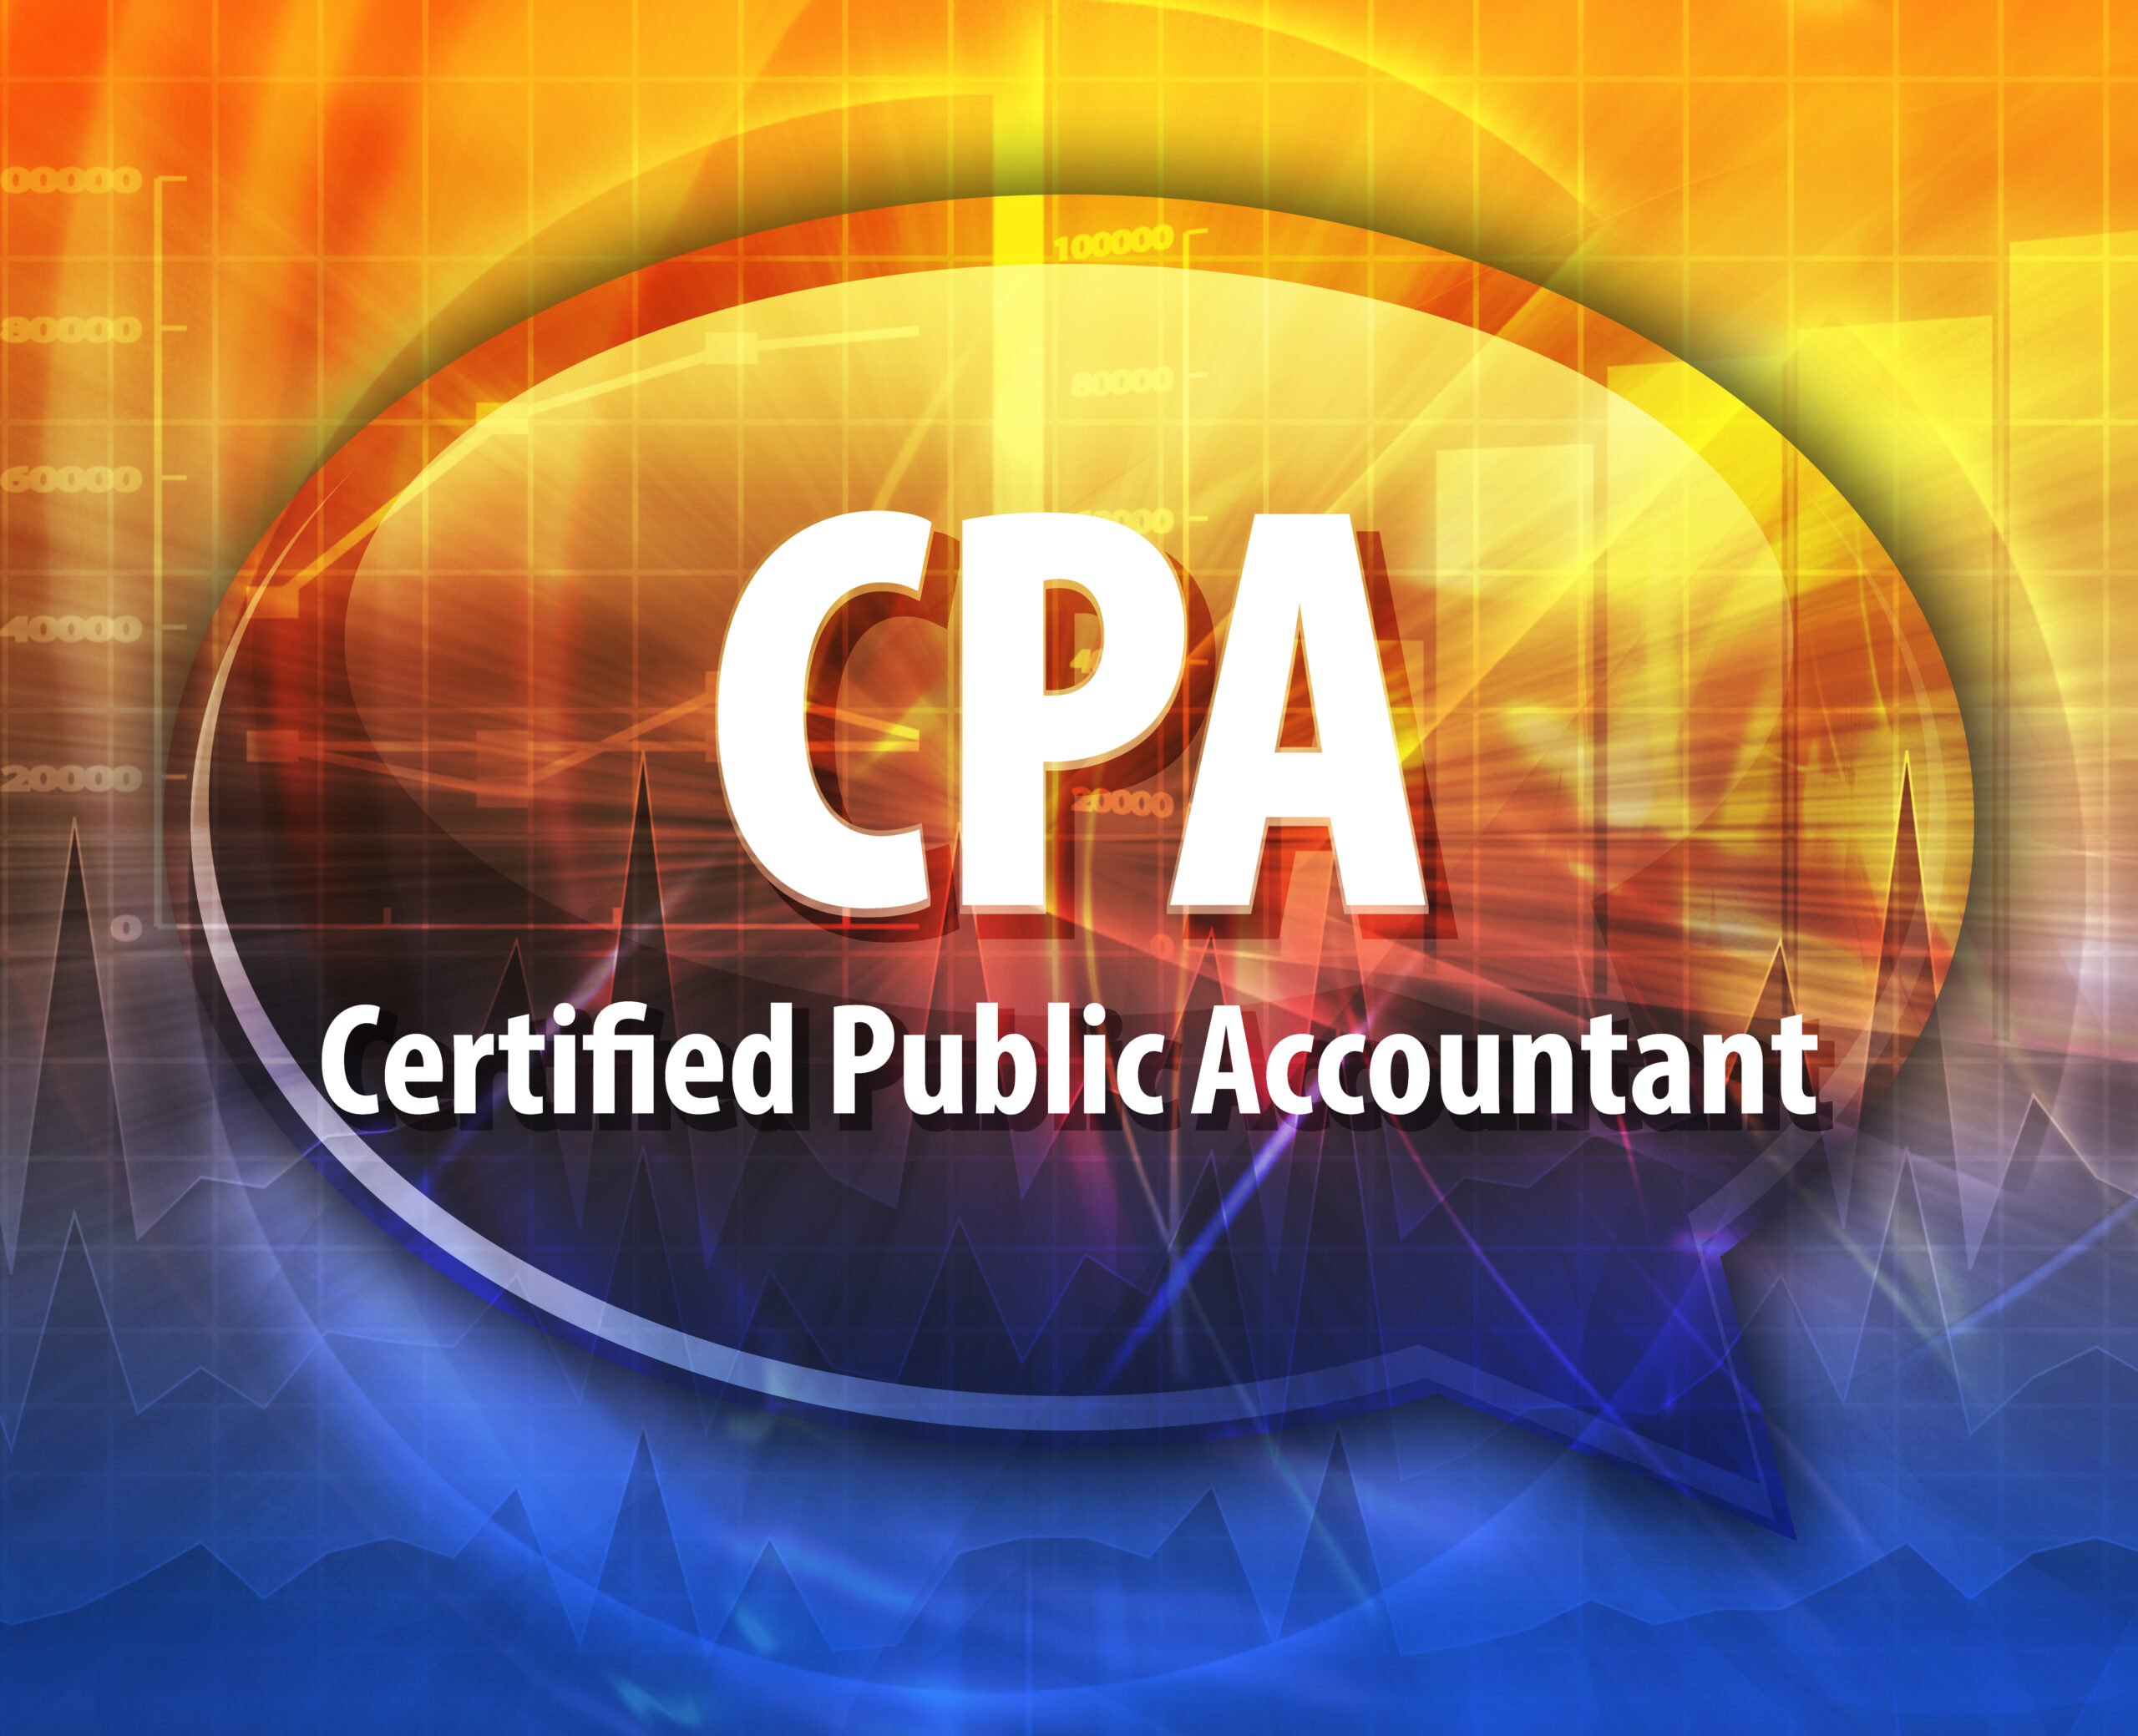 word speech bubble illustration of business acronym term CPA Cer